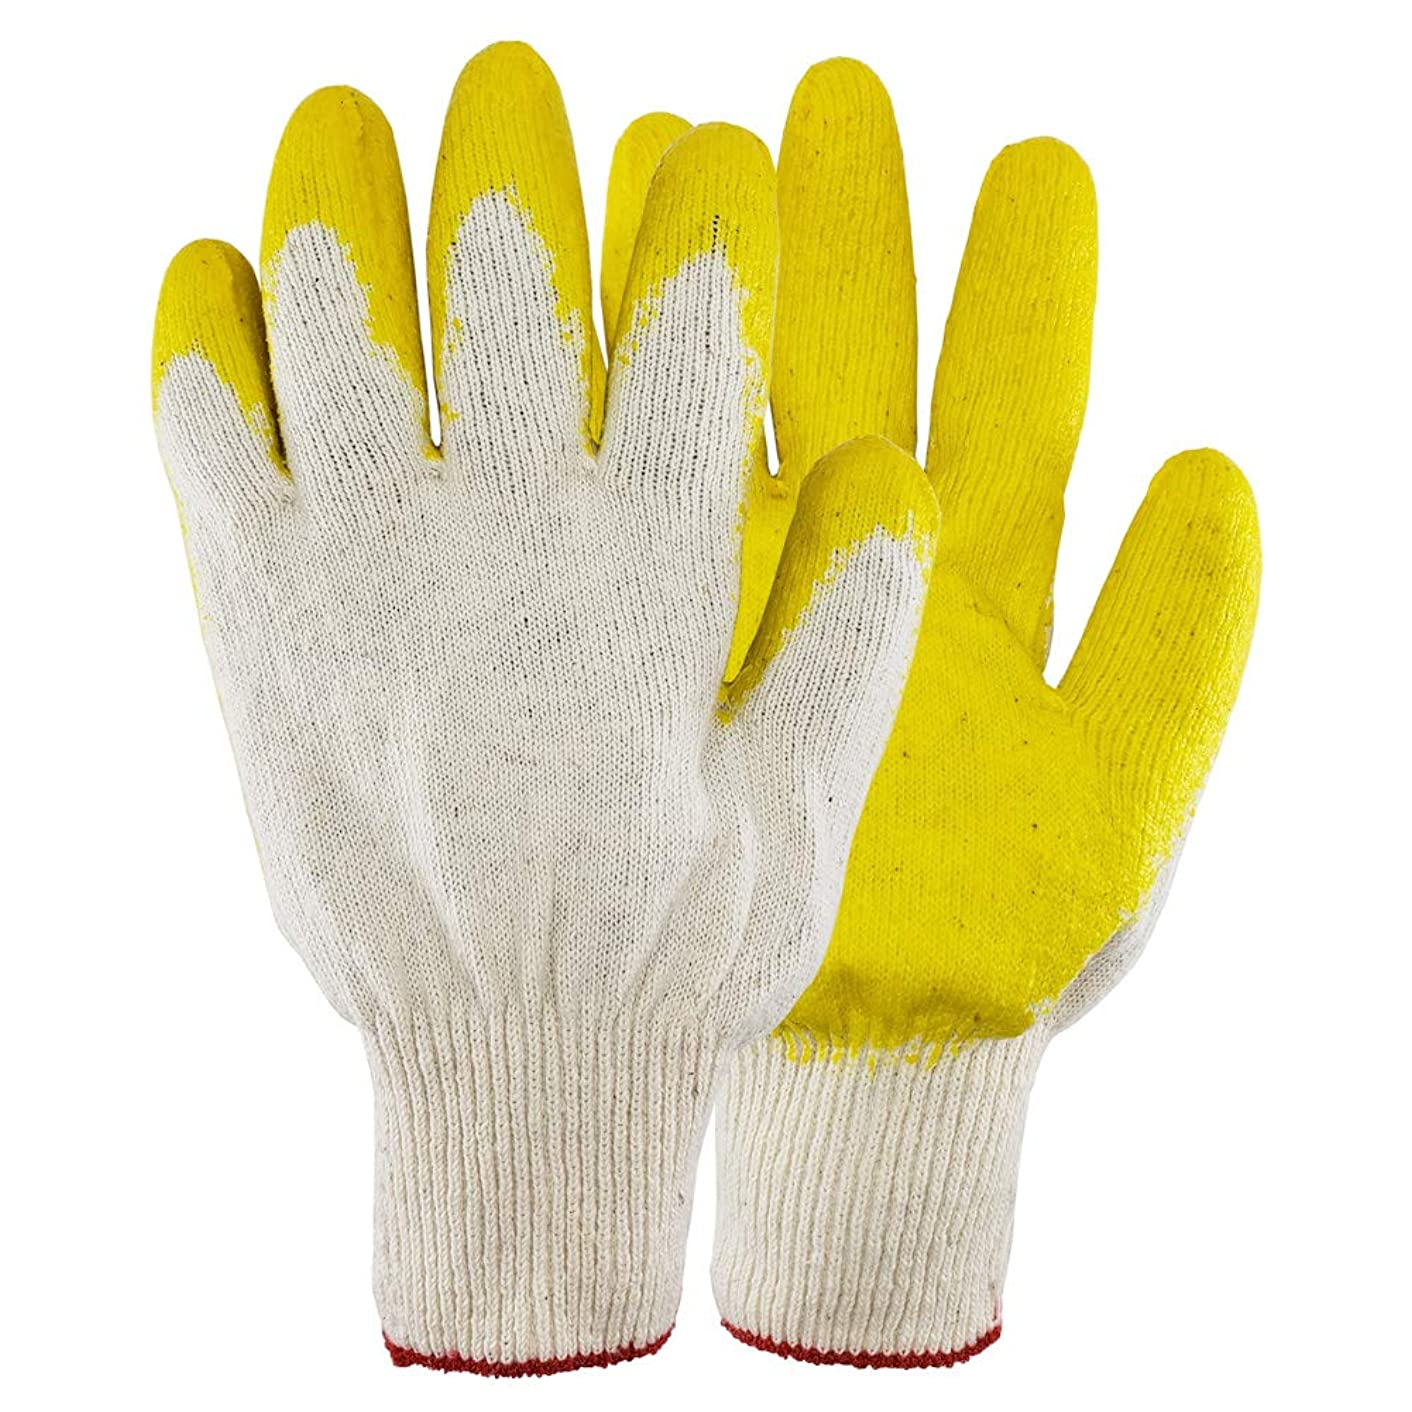 10 Pairs, The Elixir String Knit Palm, Yellow Latex Dipped Nitrile Coated Work Gloves for General Purpose, Safety Working Gloves, Made in Korea